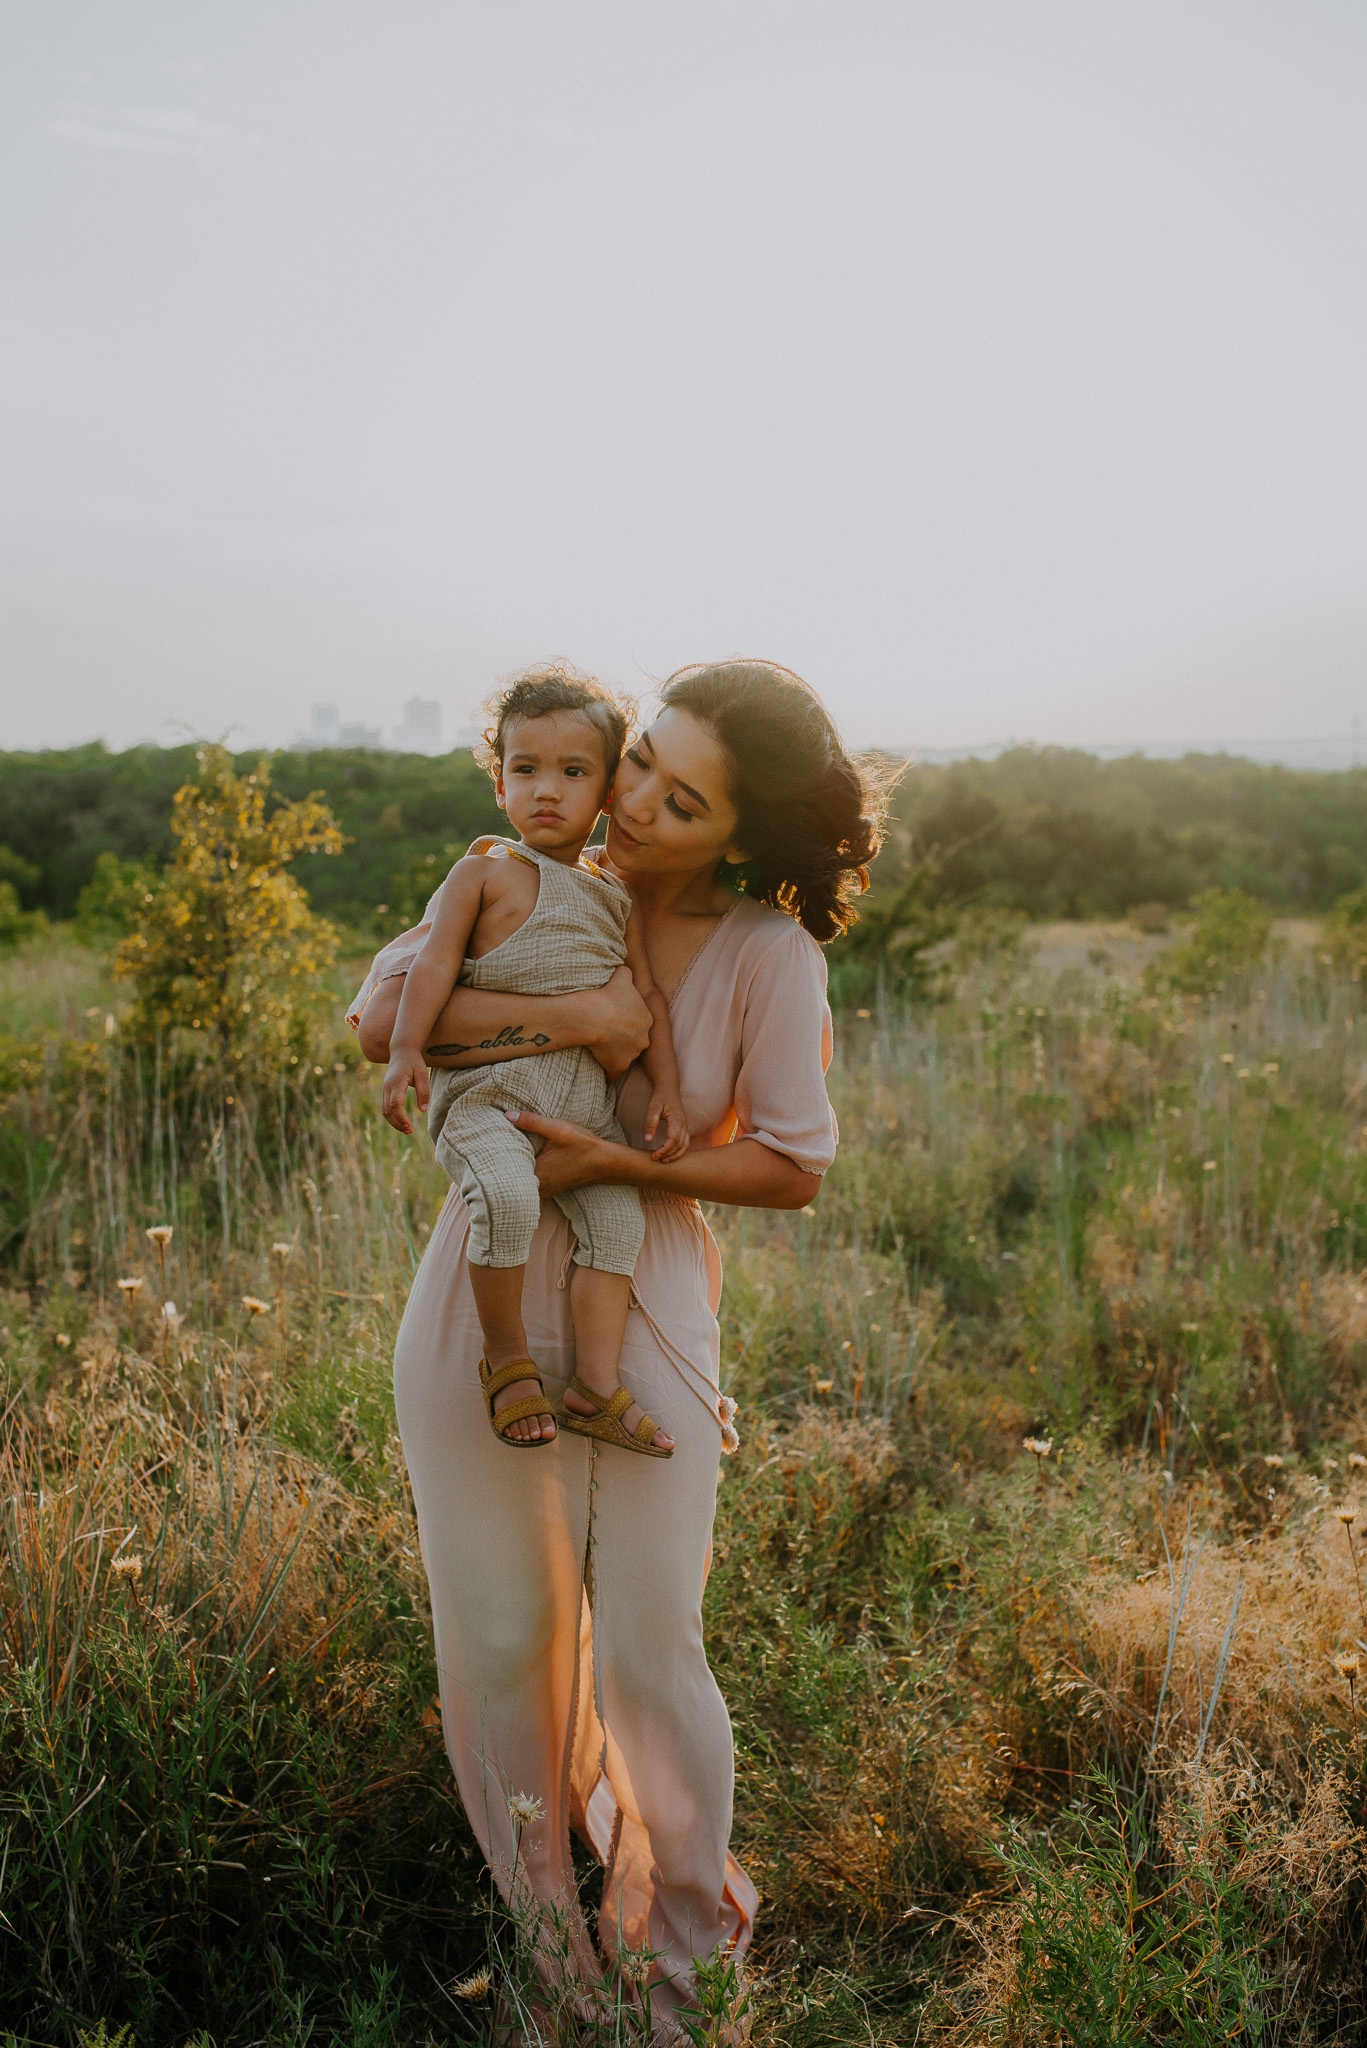 Jessi-marie-photography-dallas-fort-worth-texas-family-photographer-tandy-hills-natural-area-14